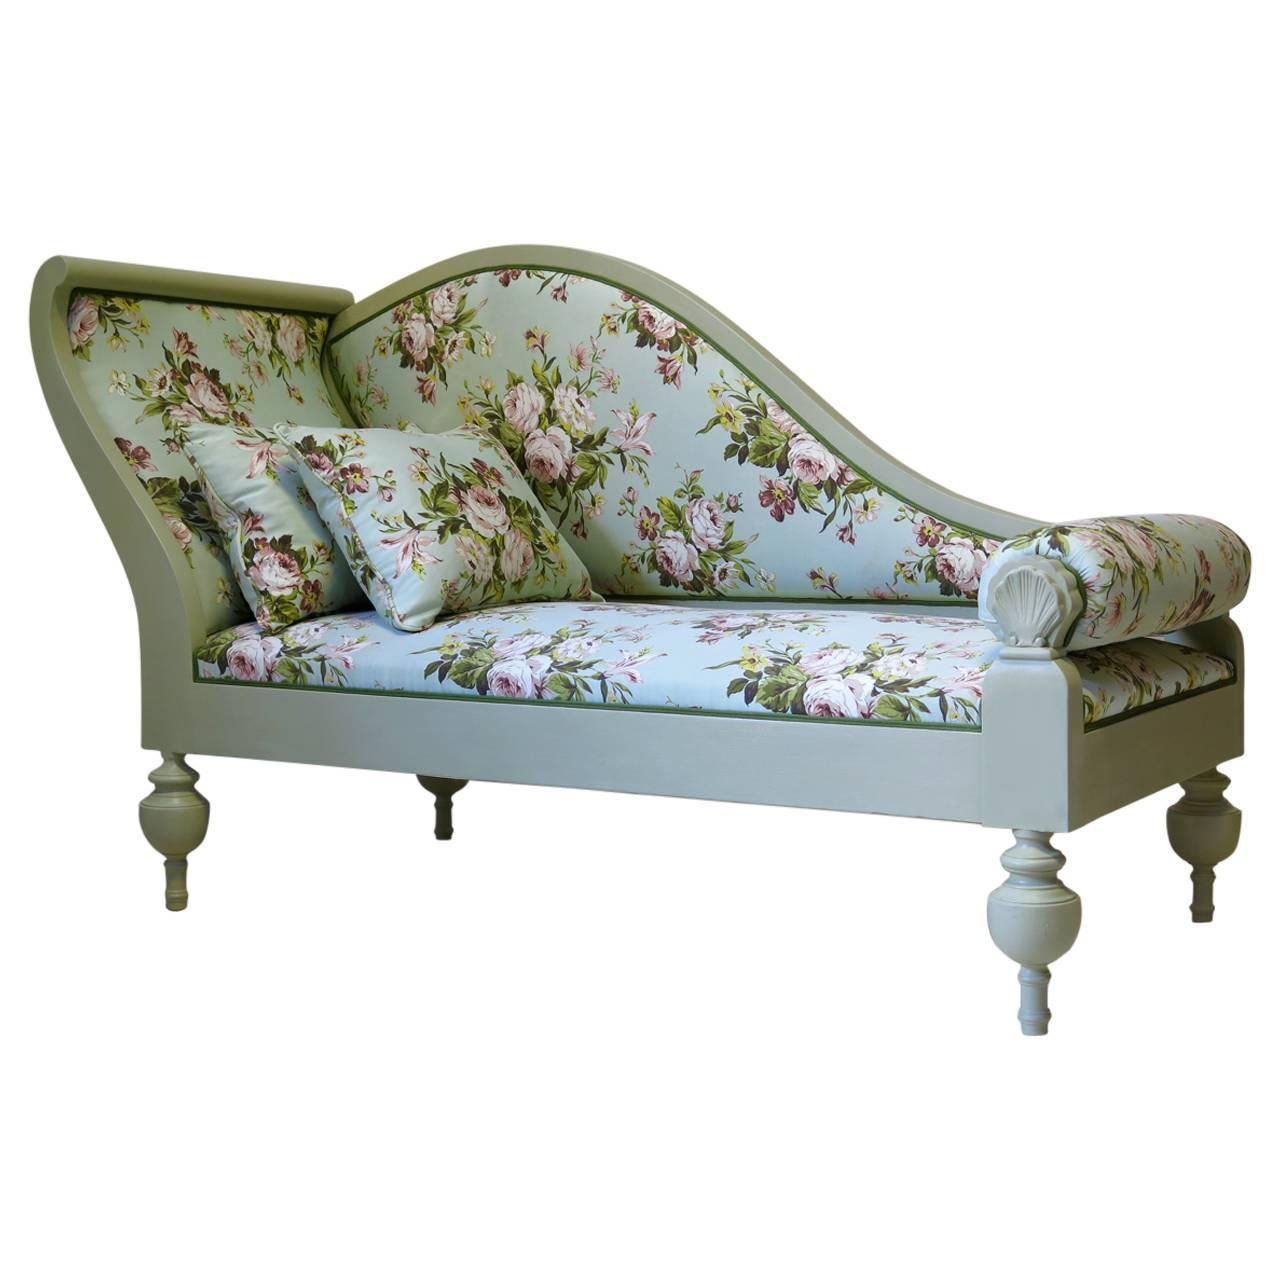 French baroque furniture - French Baroque Style Chintz Upholstered Daybed Circa 1940s For Sale At 1stdibs